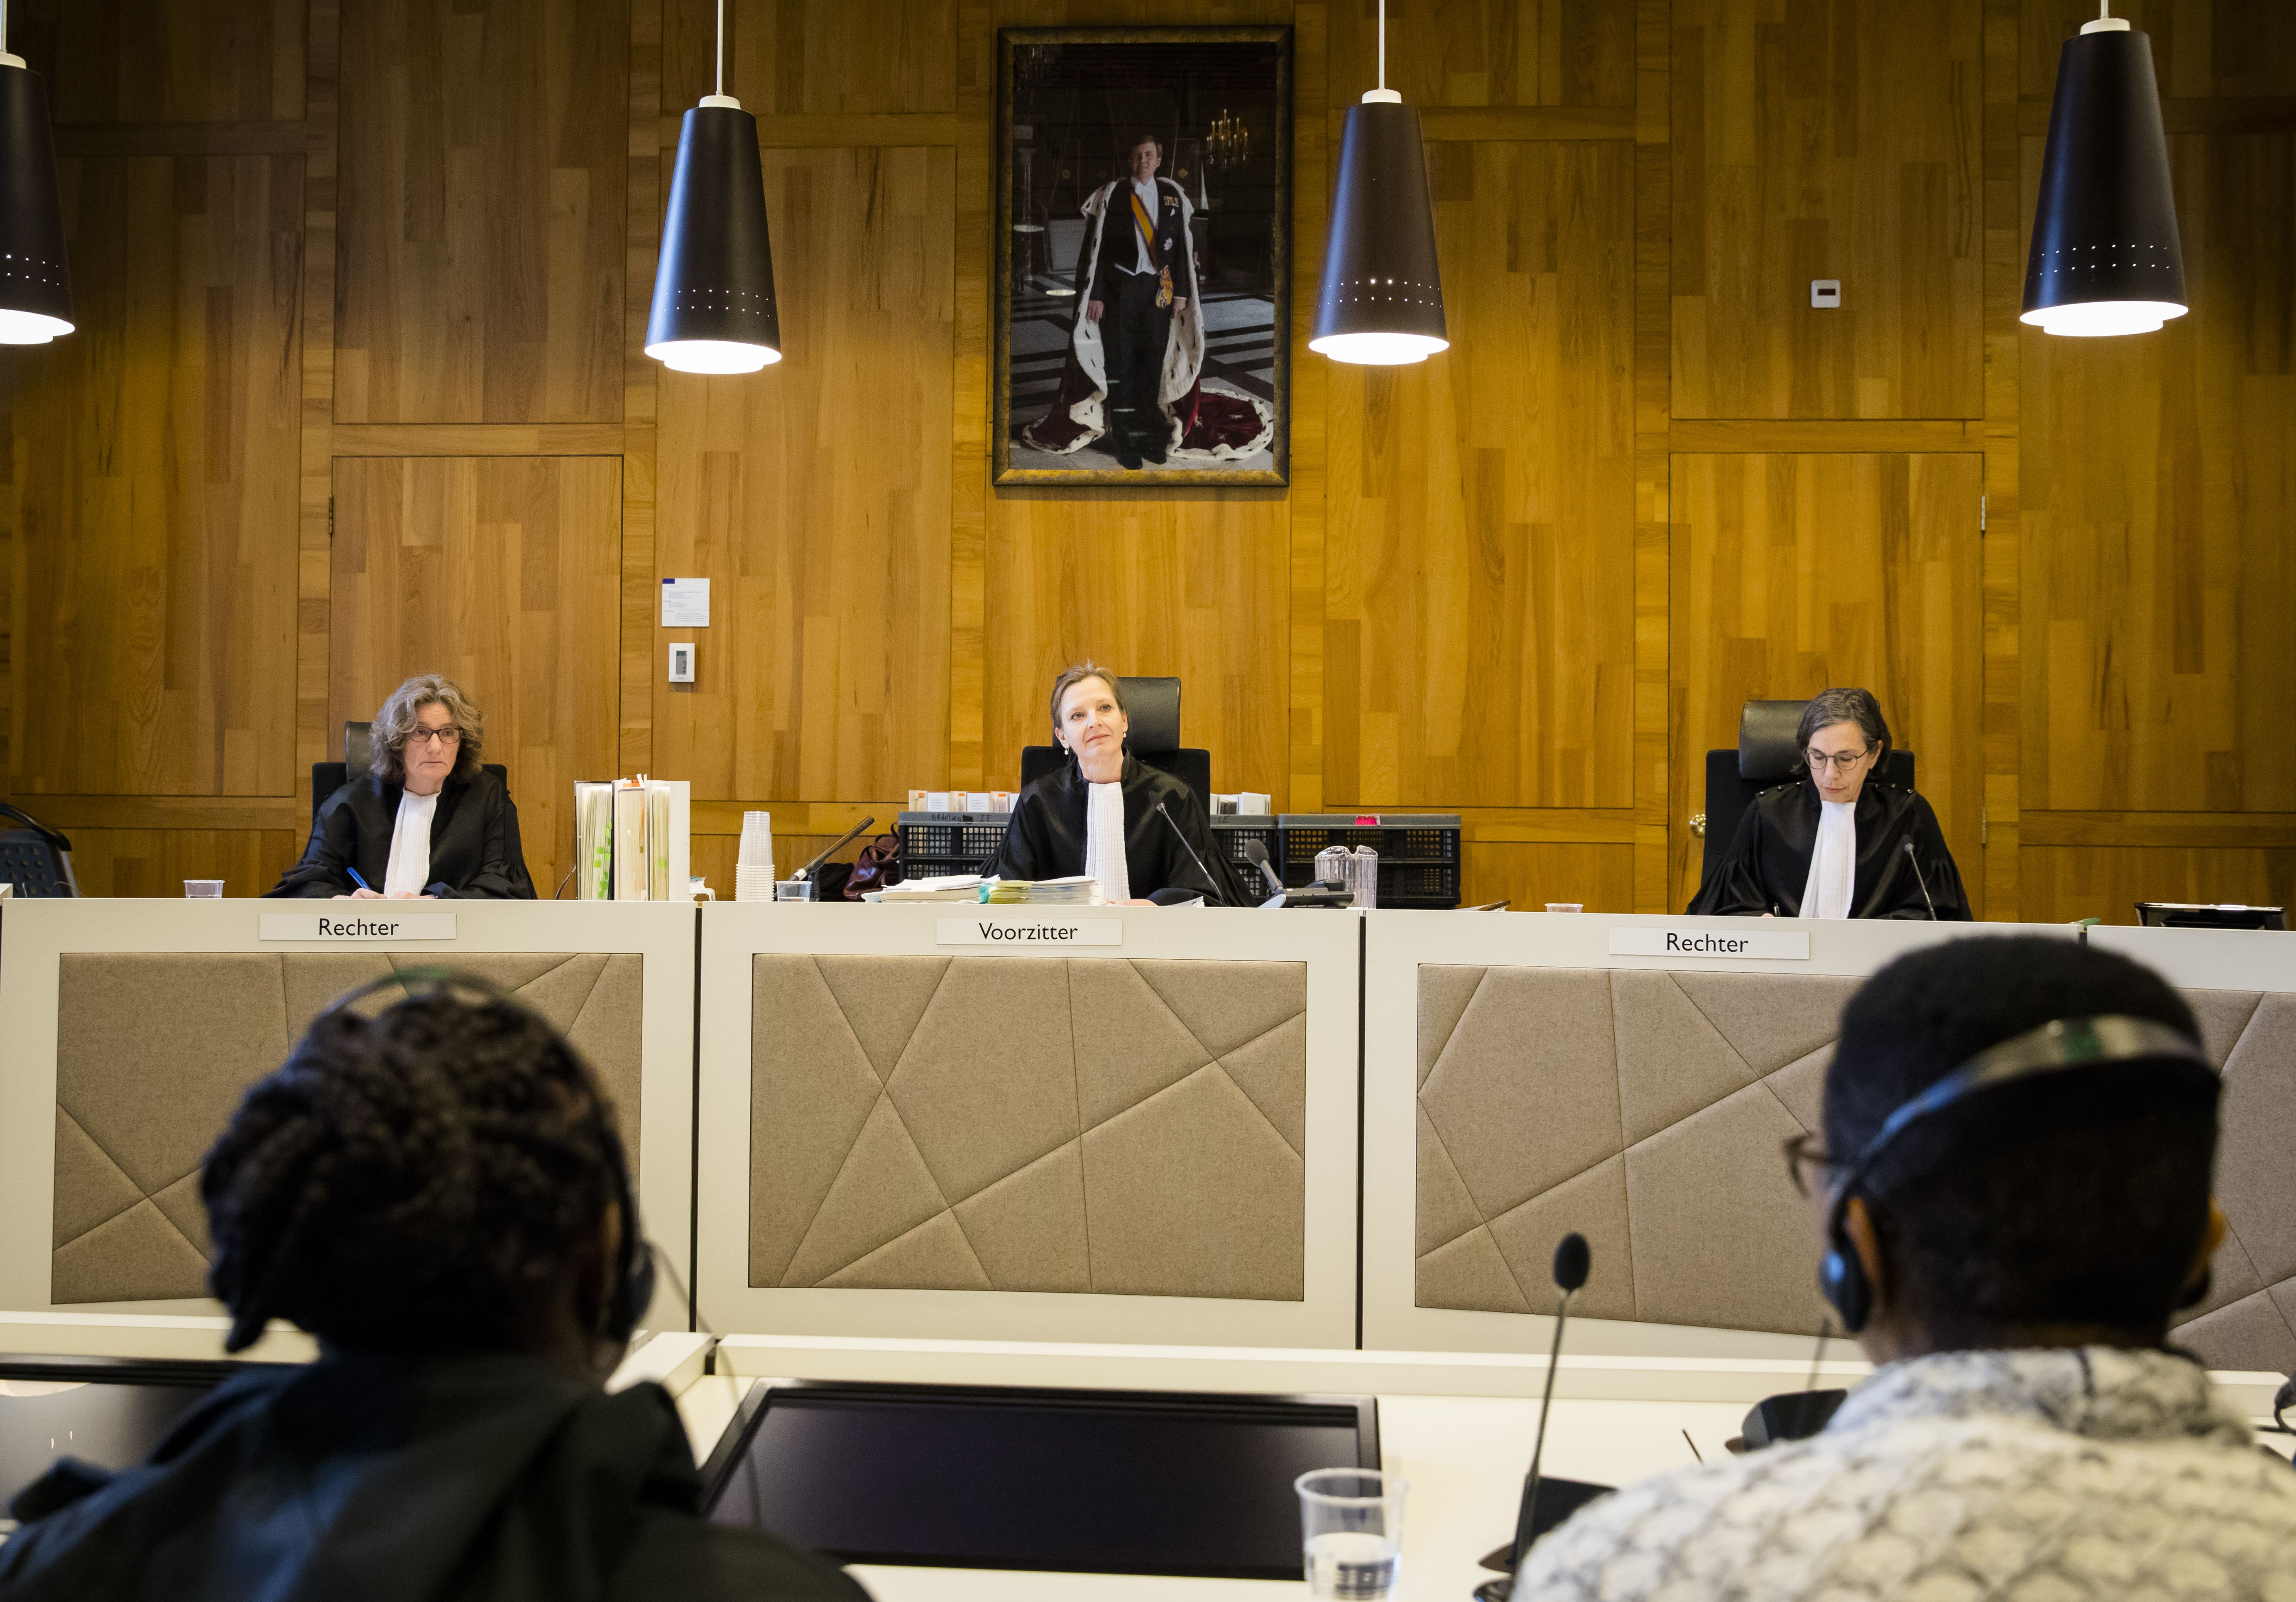 (L-R) Judges Bowine Meijer, Larisa Alwin (Chairman) and Anette Bordes attend a civil court case trial against Dutch-British multinational oil company Shell in The Hague courthouse on February 12, 2019 (BART MAAT/AFP/Getty Images)